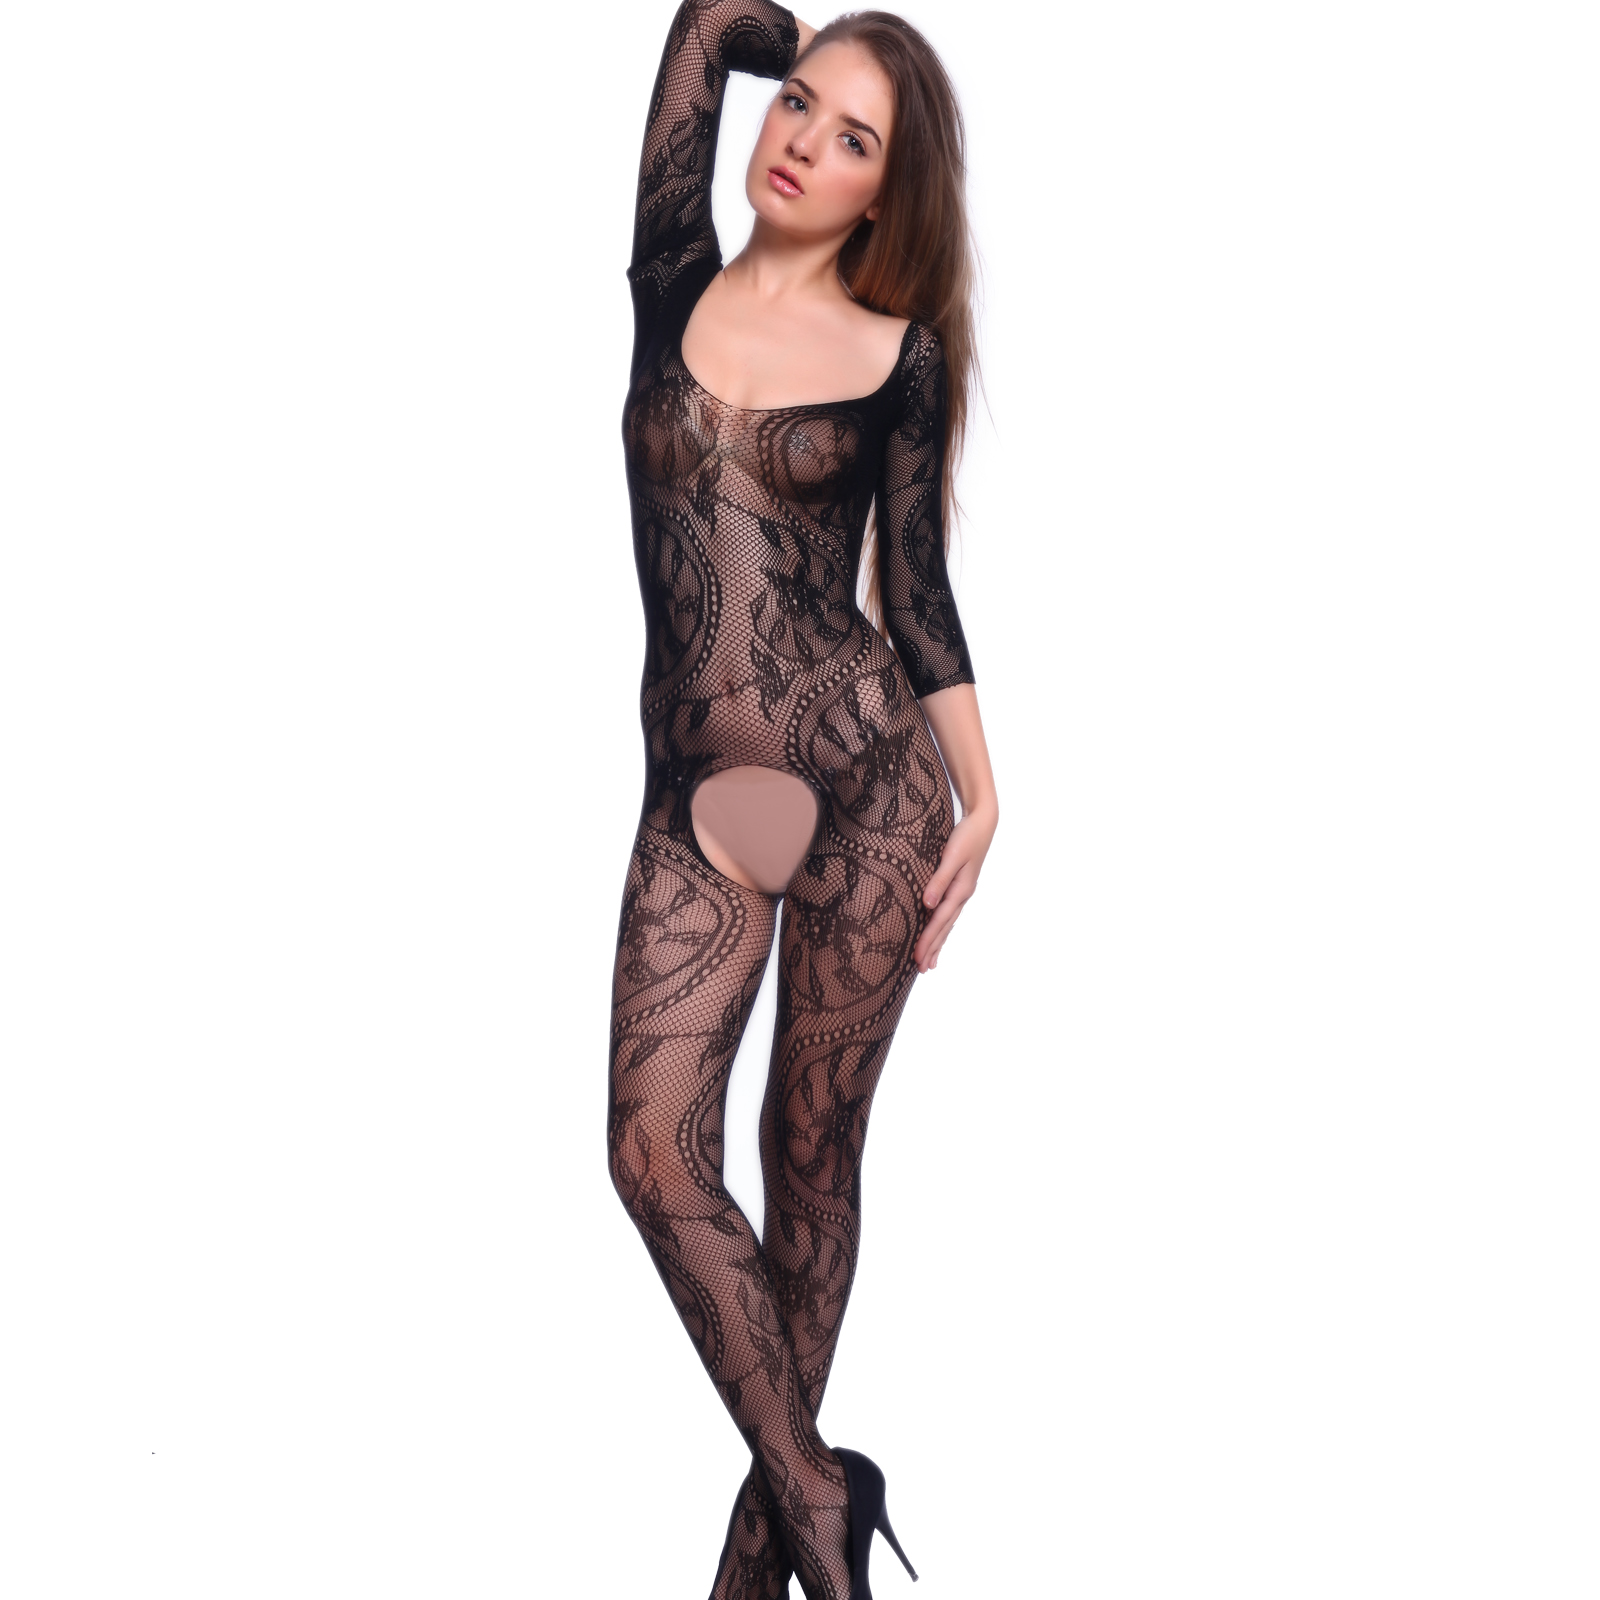 Crotchless body suit